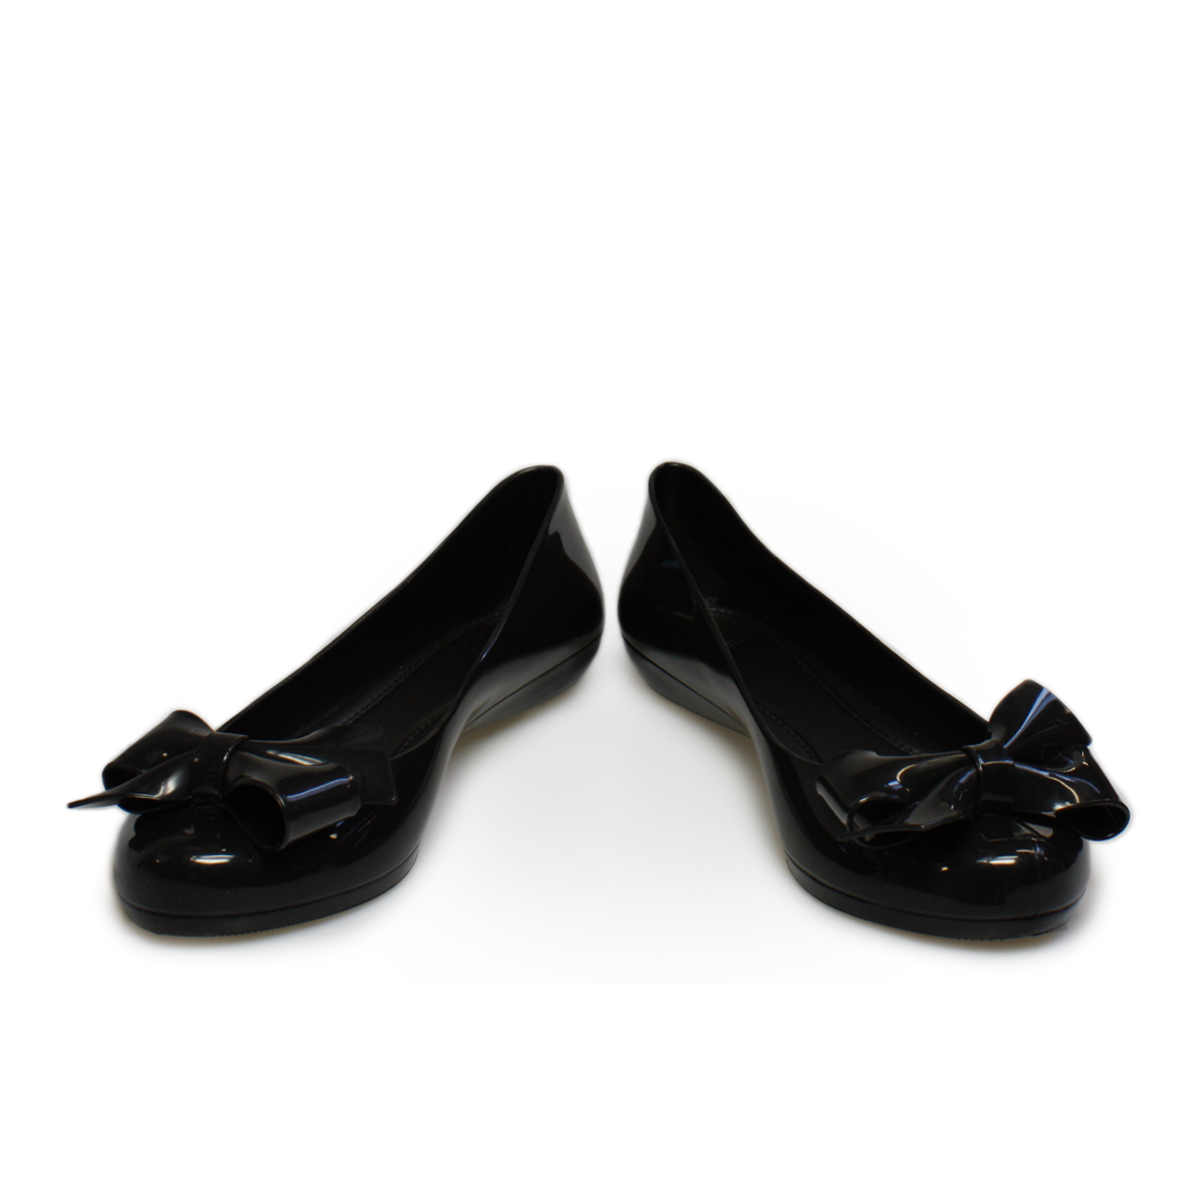 mel strawberry bow black bow pumps ballerina shoes size 3